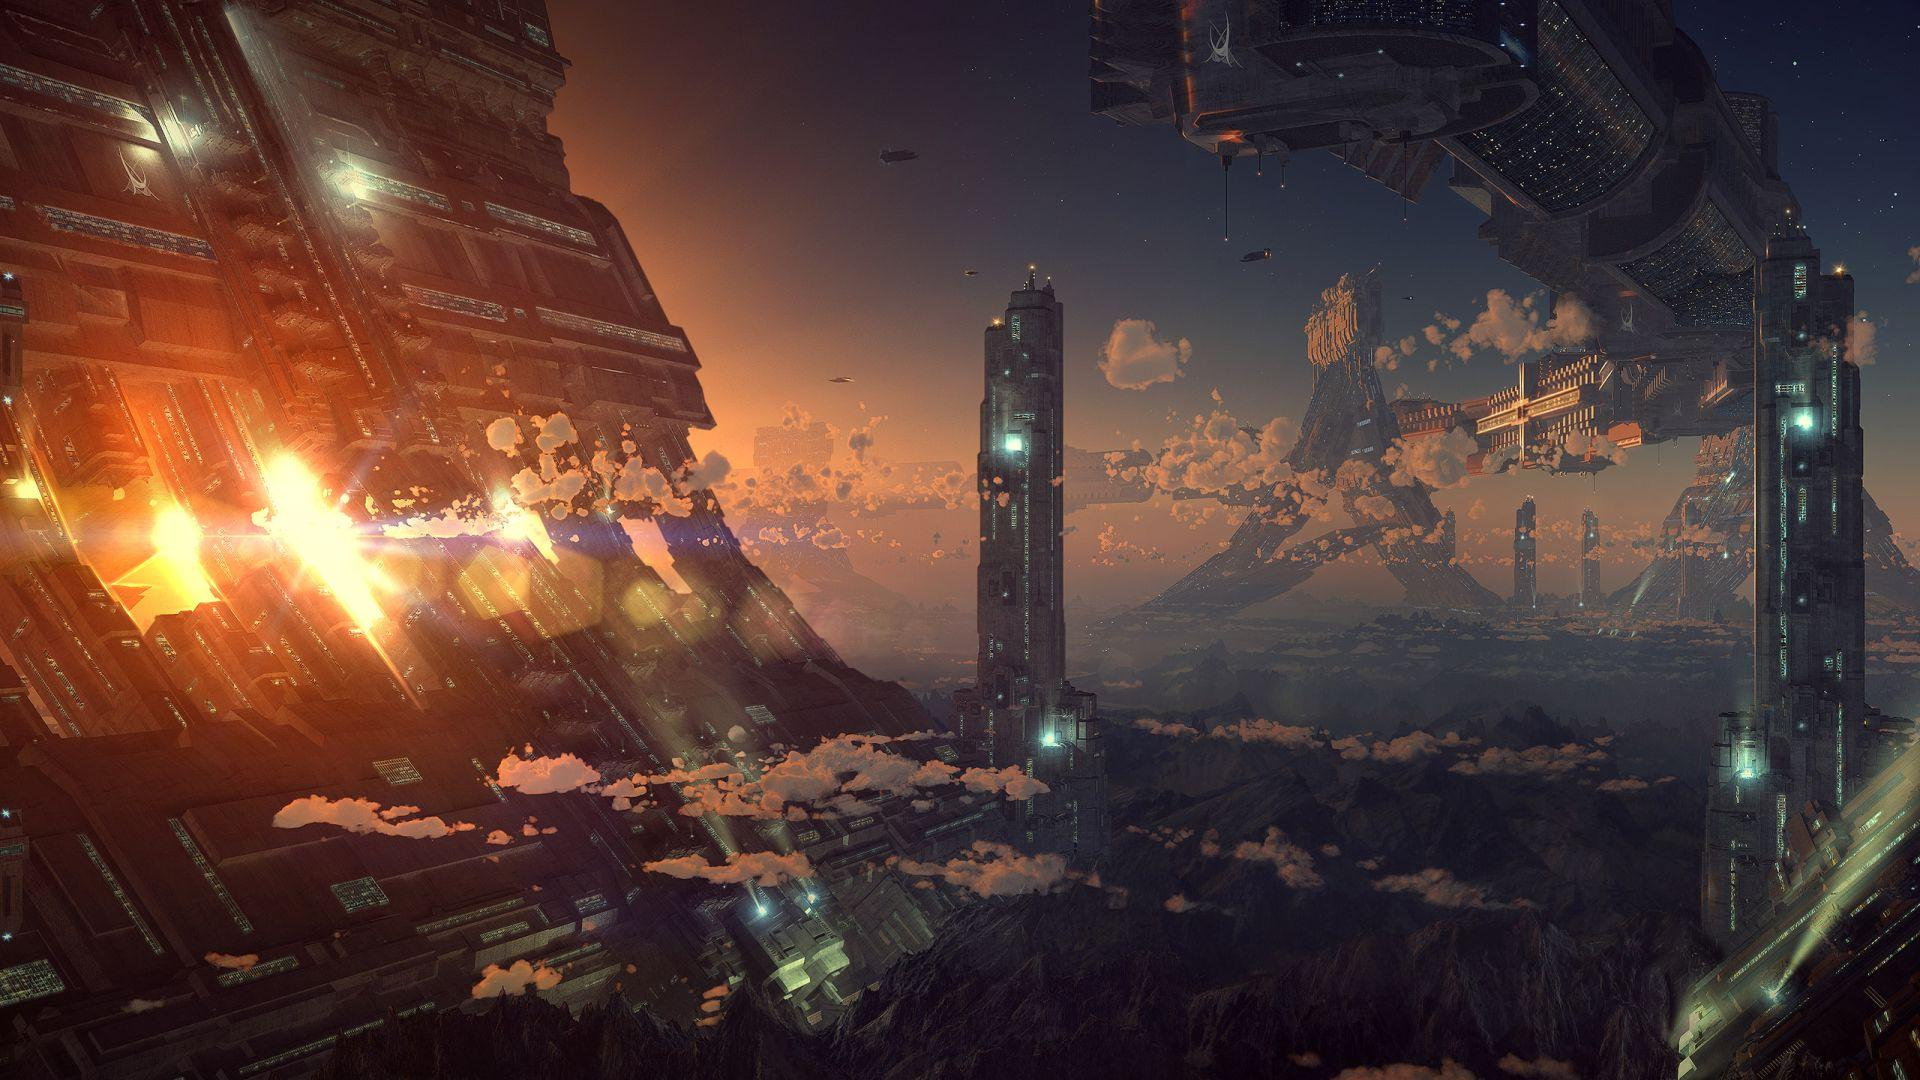 sci fi backgrounds - photo #2